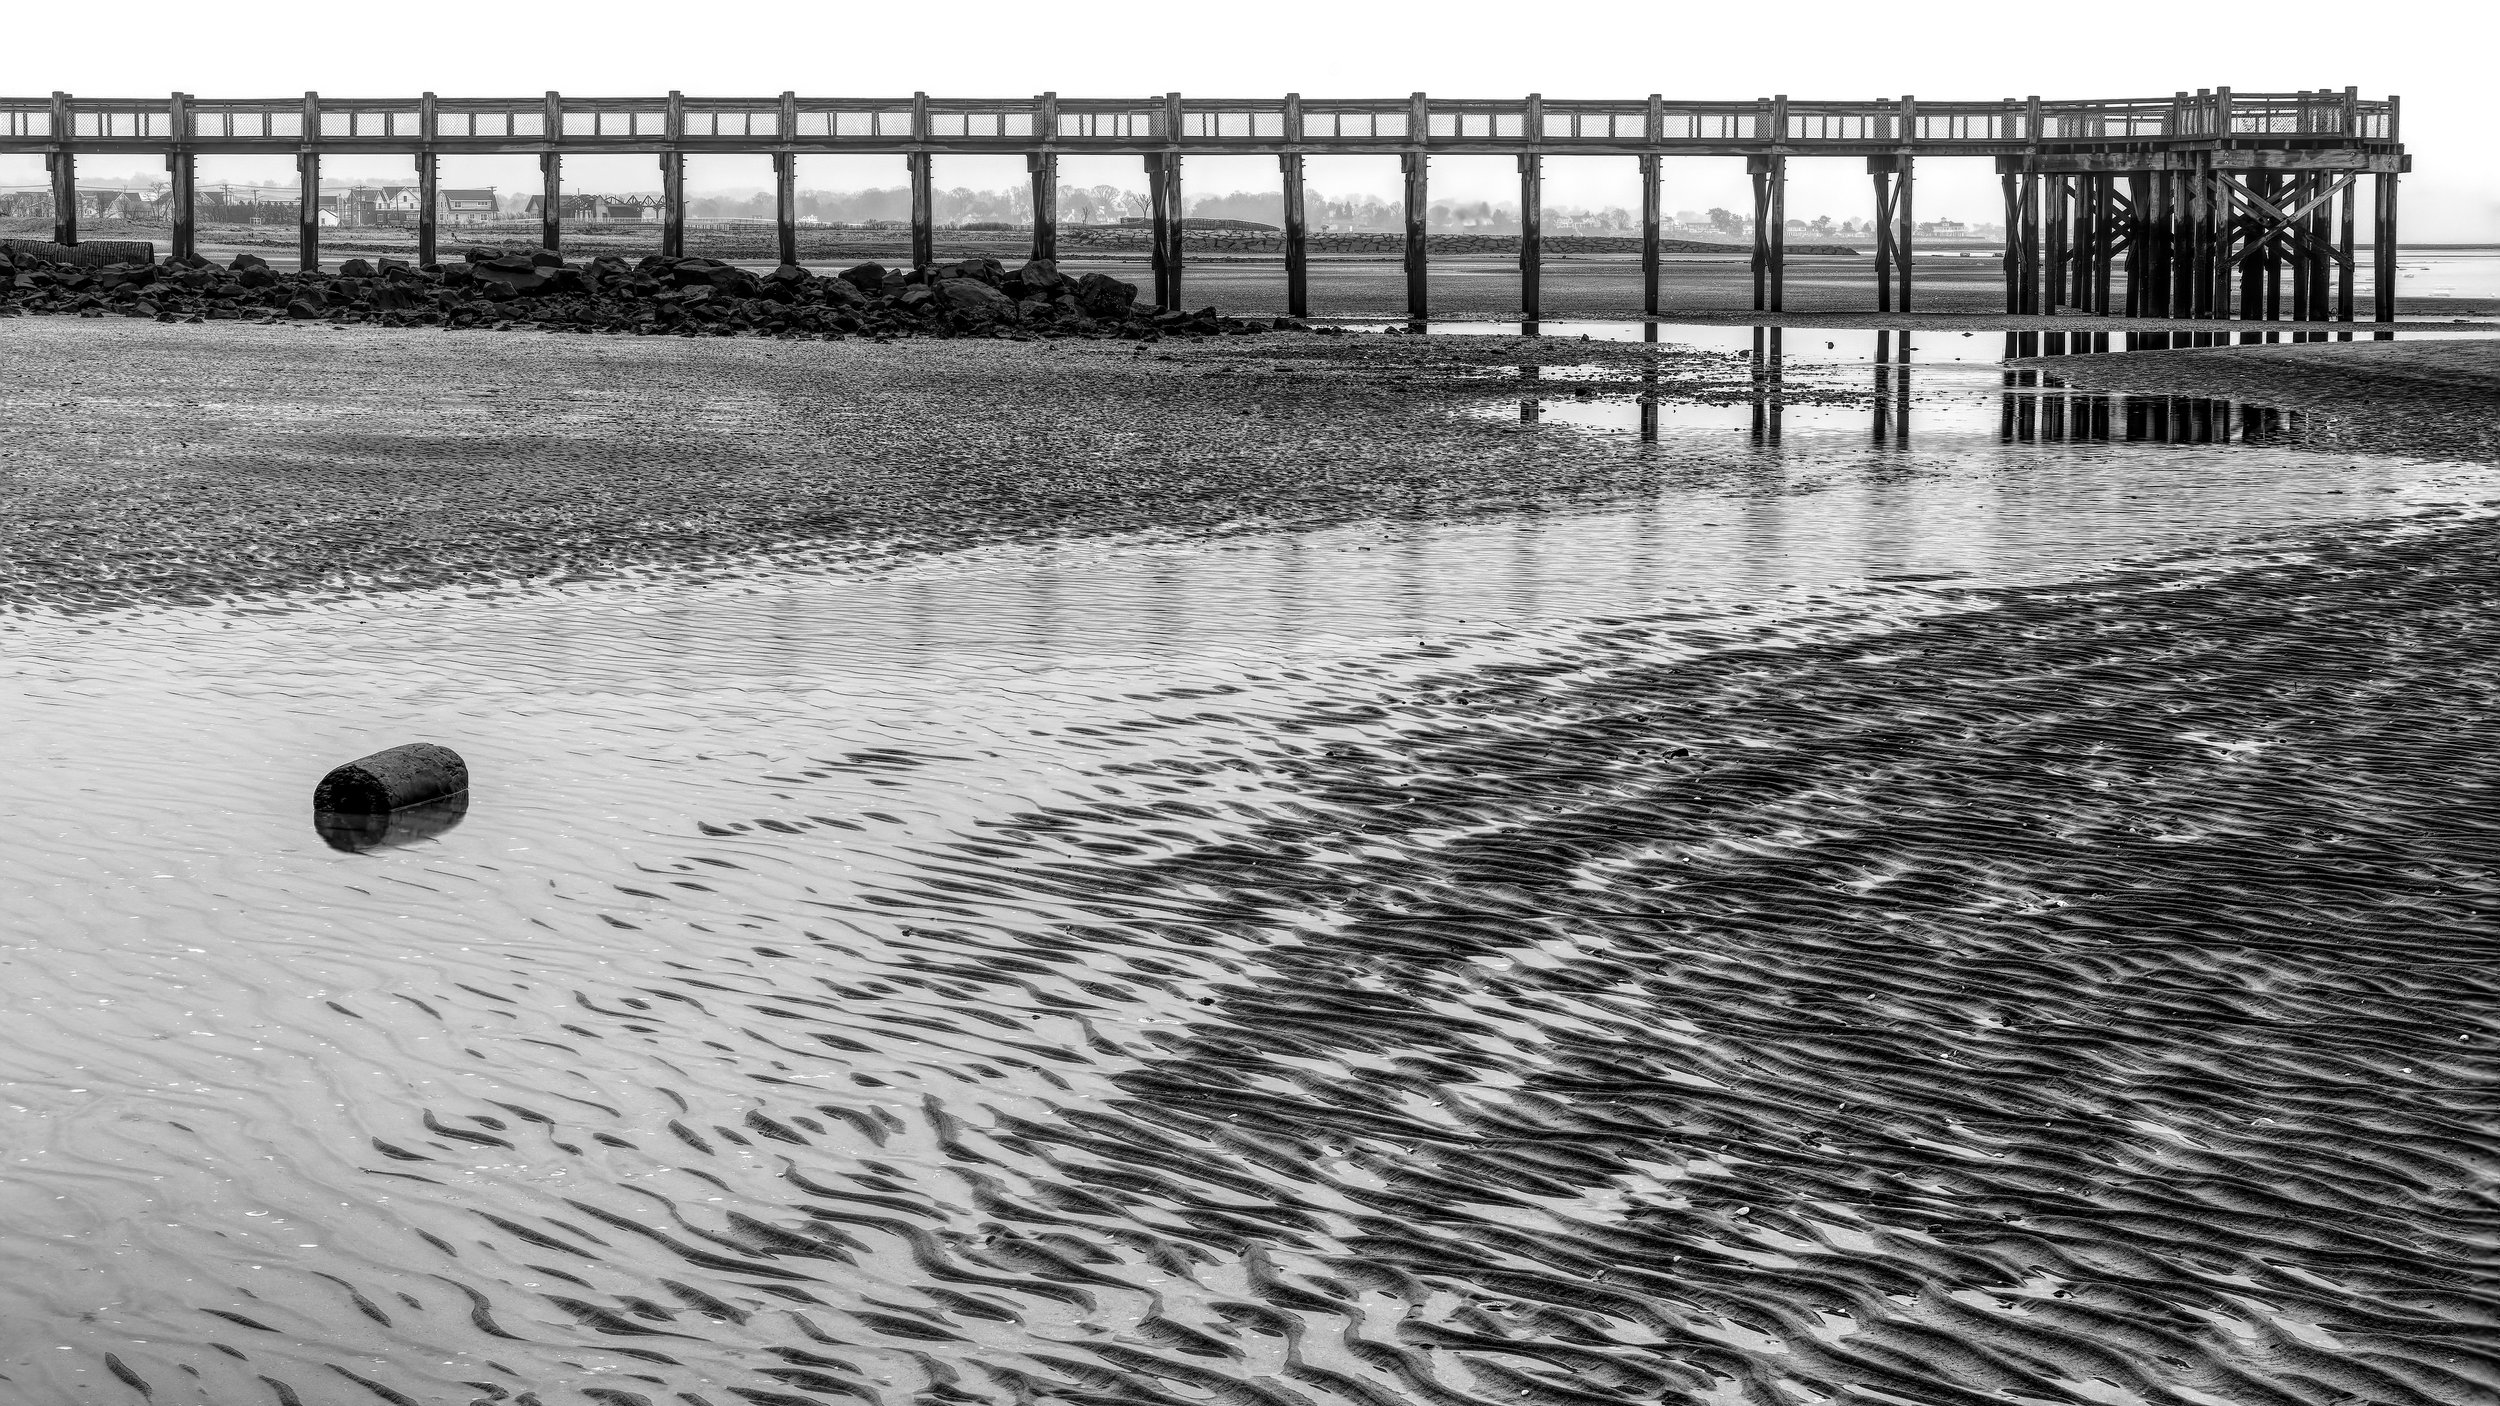 The sand shaped like thousands of eels guide me back to the pier. The receding waters also trail off in a serpentine fashion and there is the pier, each of its legs forming a frame so it looks like a string of paintings hung together to make a larger mural of the coastline.